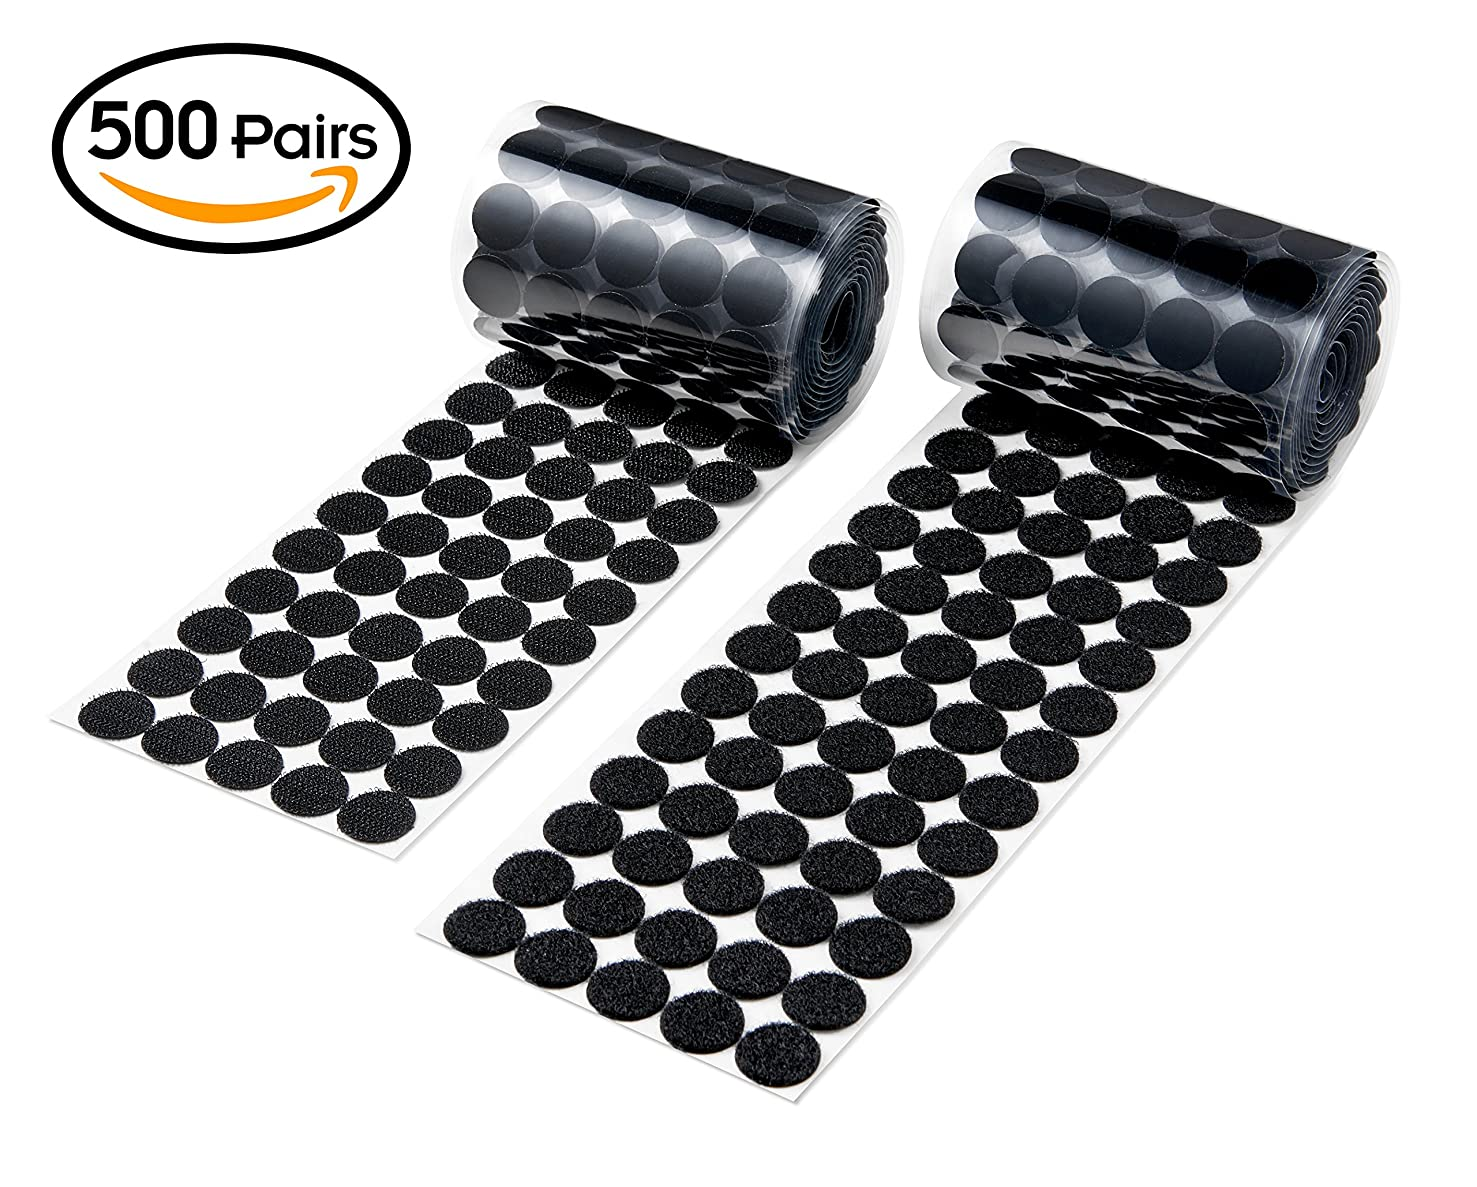 Heze 1000 pcs (500 Pair Sets)20mm Diameter Sticky Back Coins Hook & Loop Self Adhesive Dots Tapes (Black, 1000pcs)